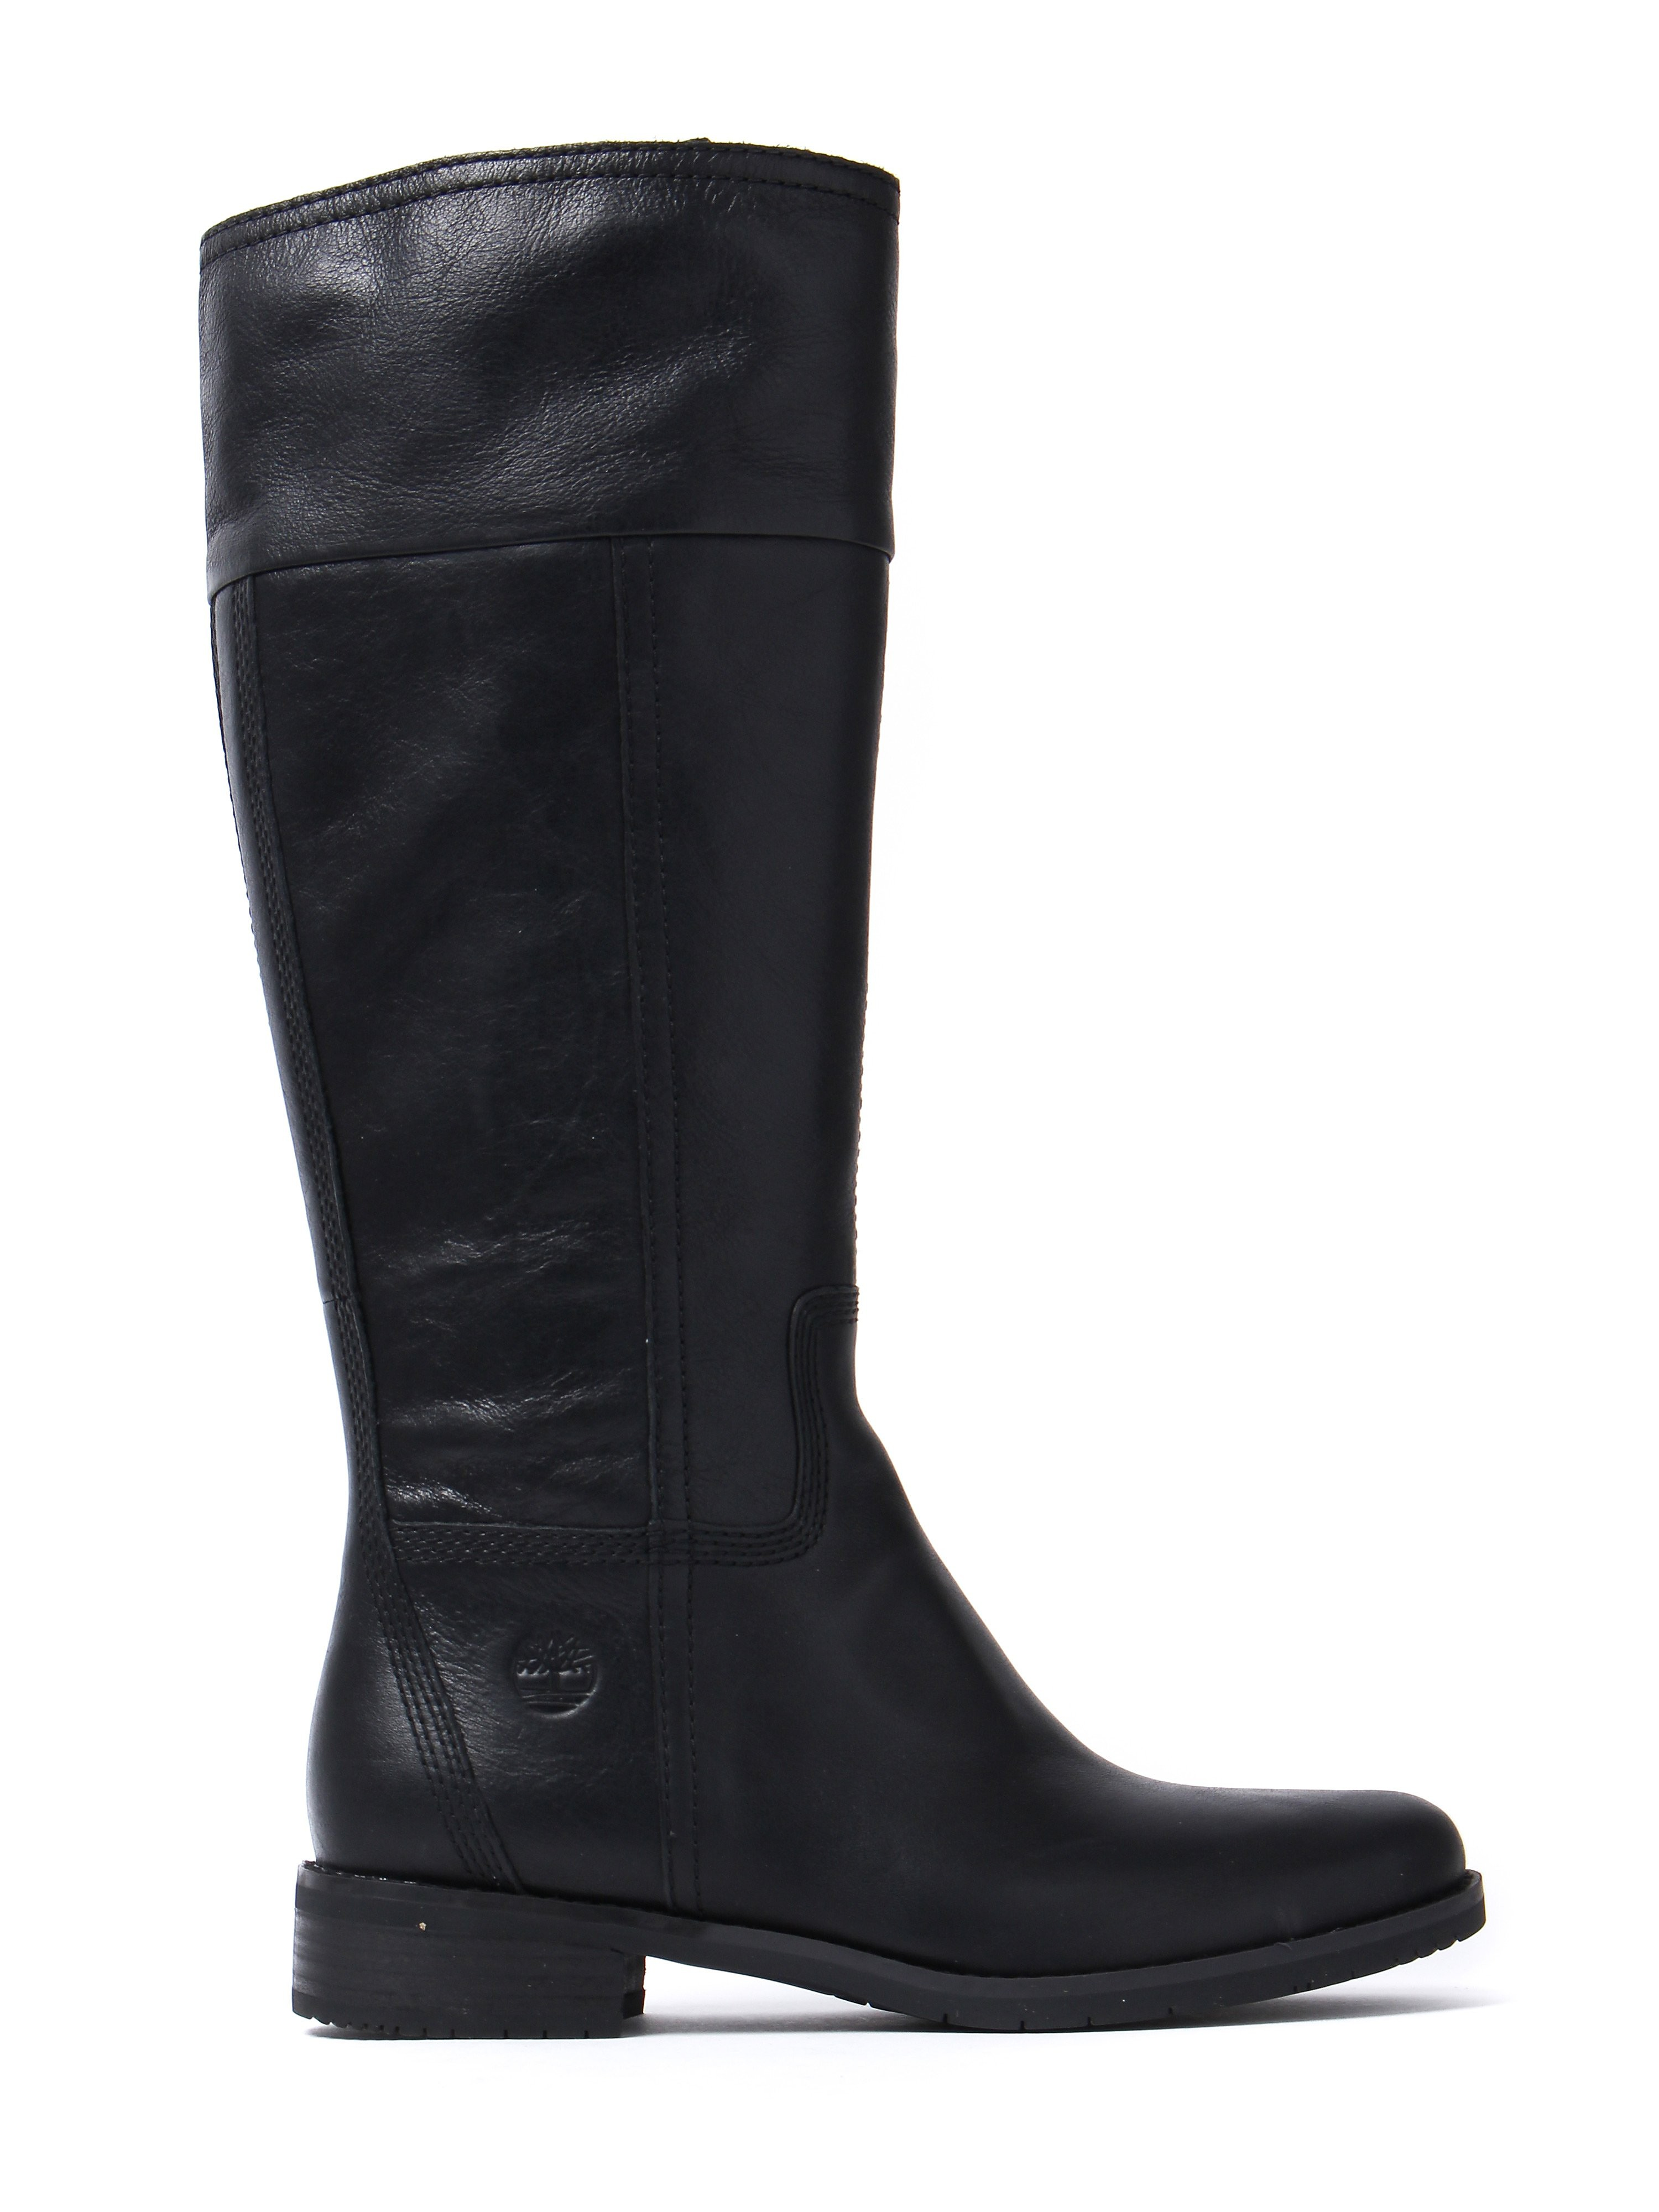 Timberland Women's Venice Park Tall Boots – Black Leather